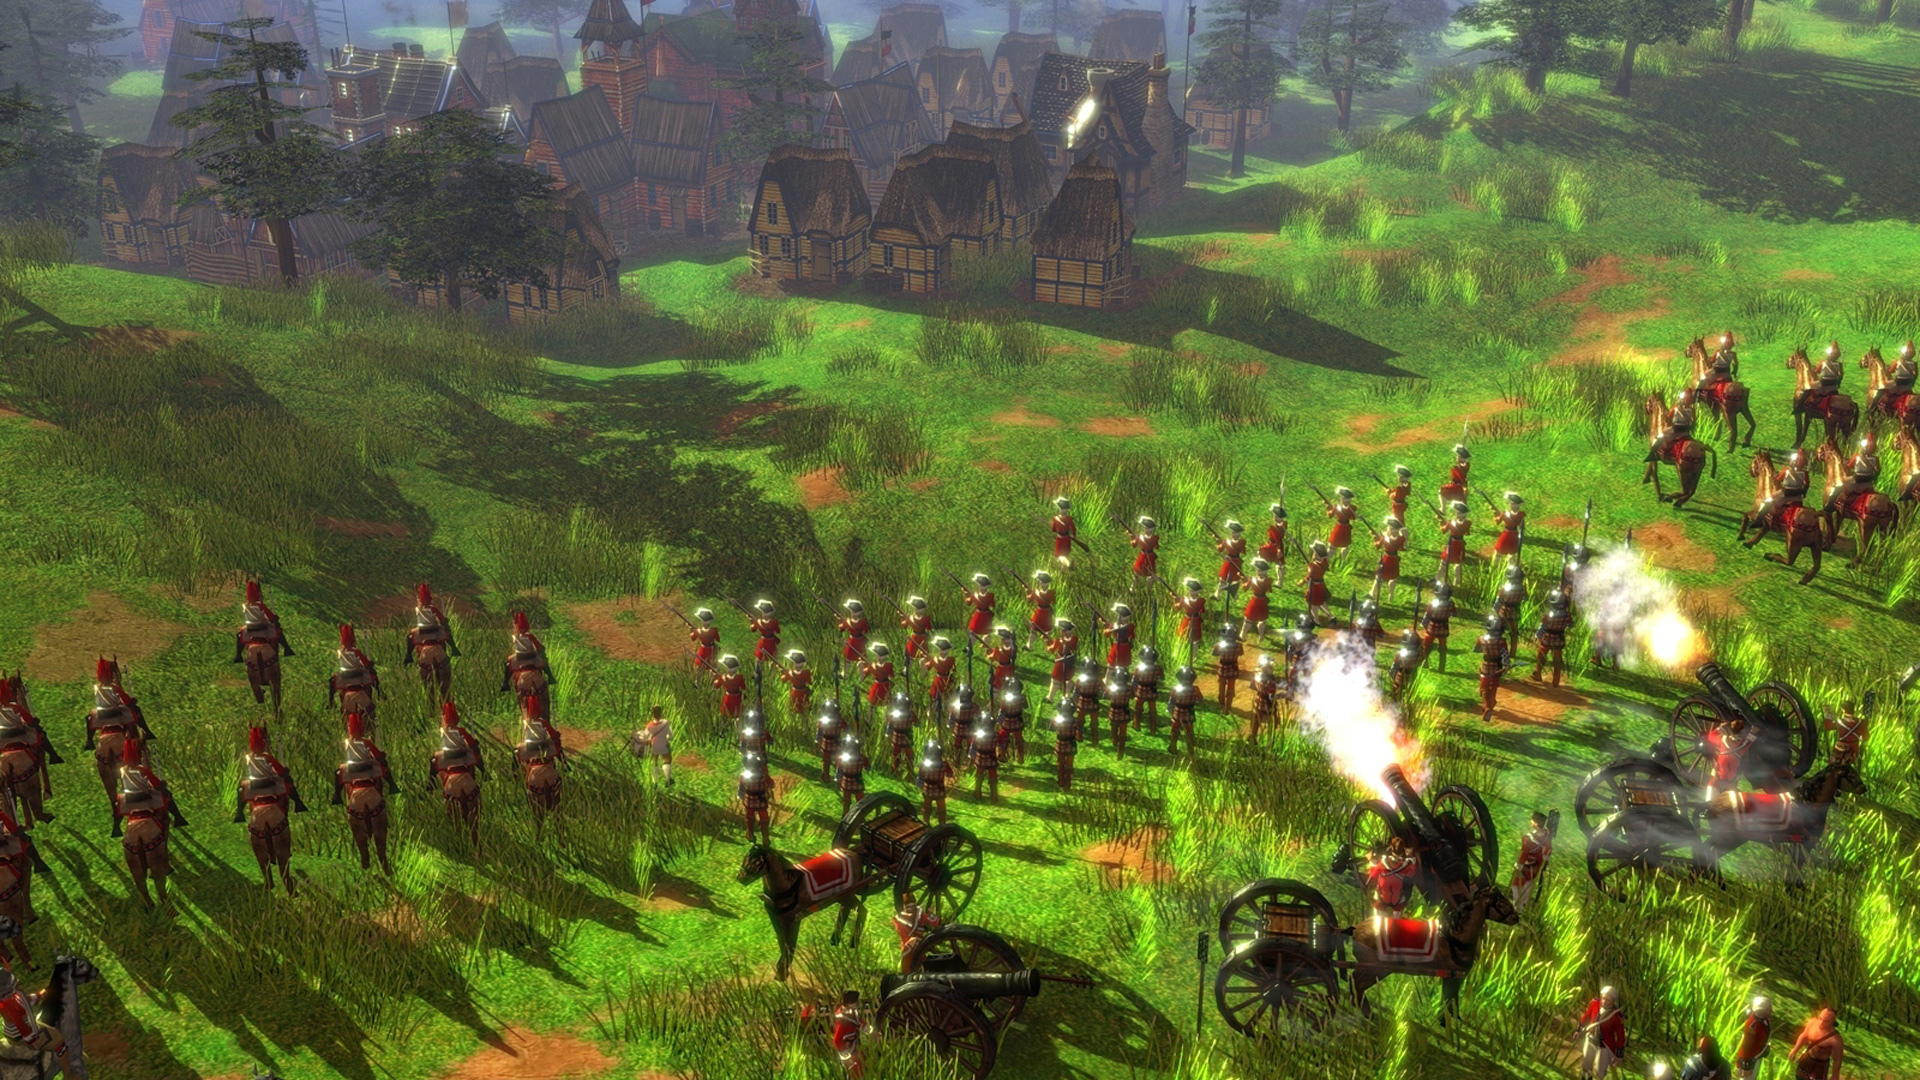 Free Age of Empires III Wallpaper in 1920x1080